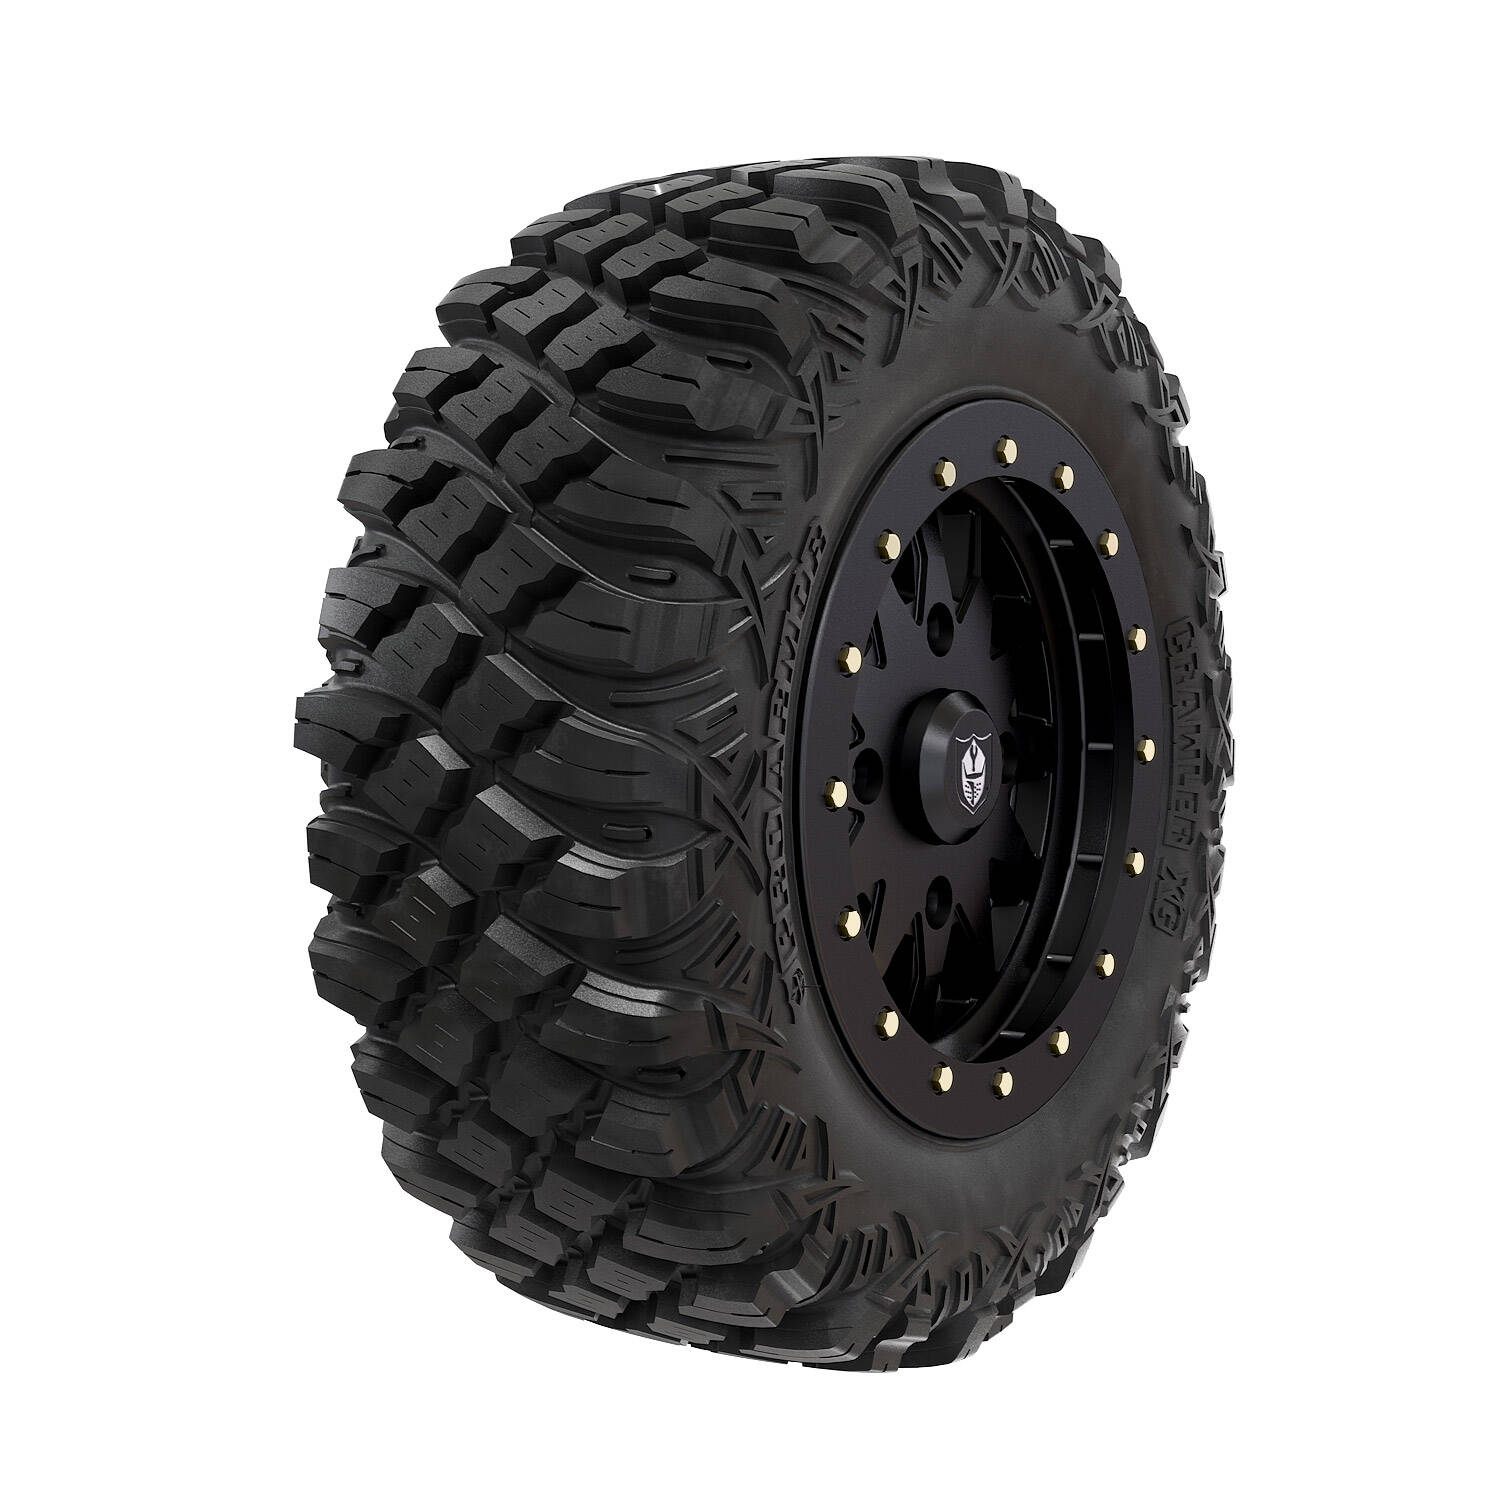 Pro Armor® Wheel & Tire Set: Halo - Matte Black & Crawler XG - 28""